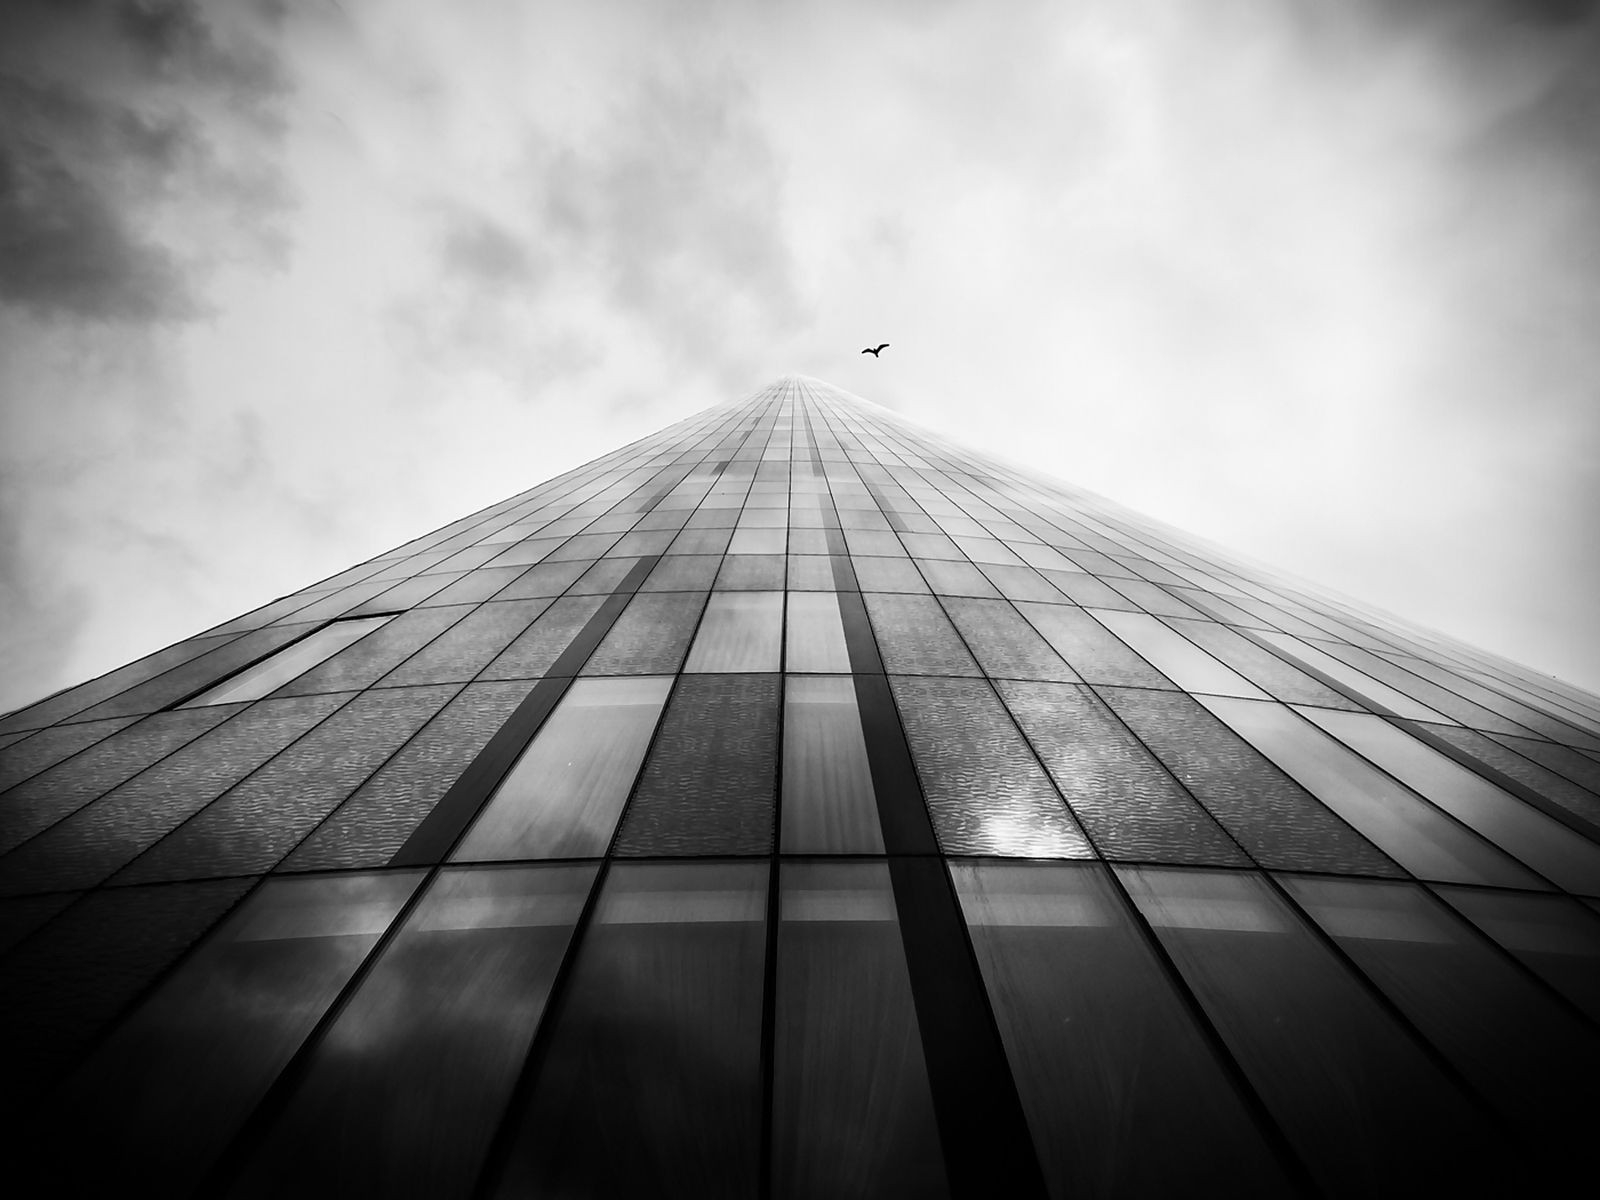 Pin By Sara On Black And White | Pinterest | Architectural with regard to Black And White Architecture Photography 29907